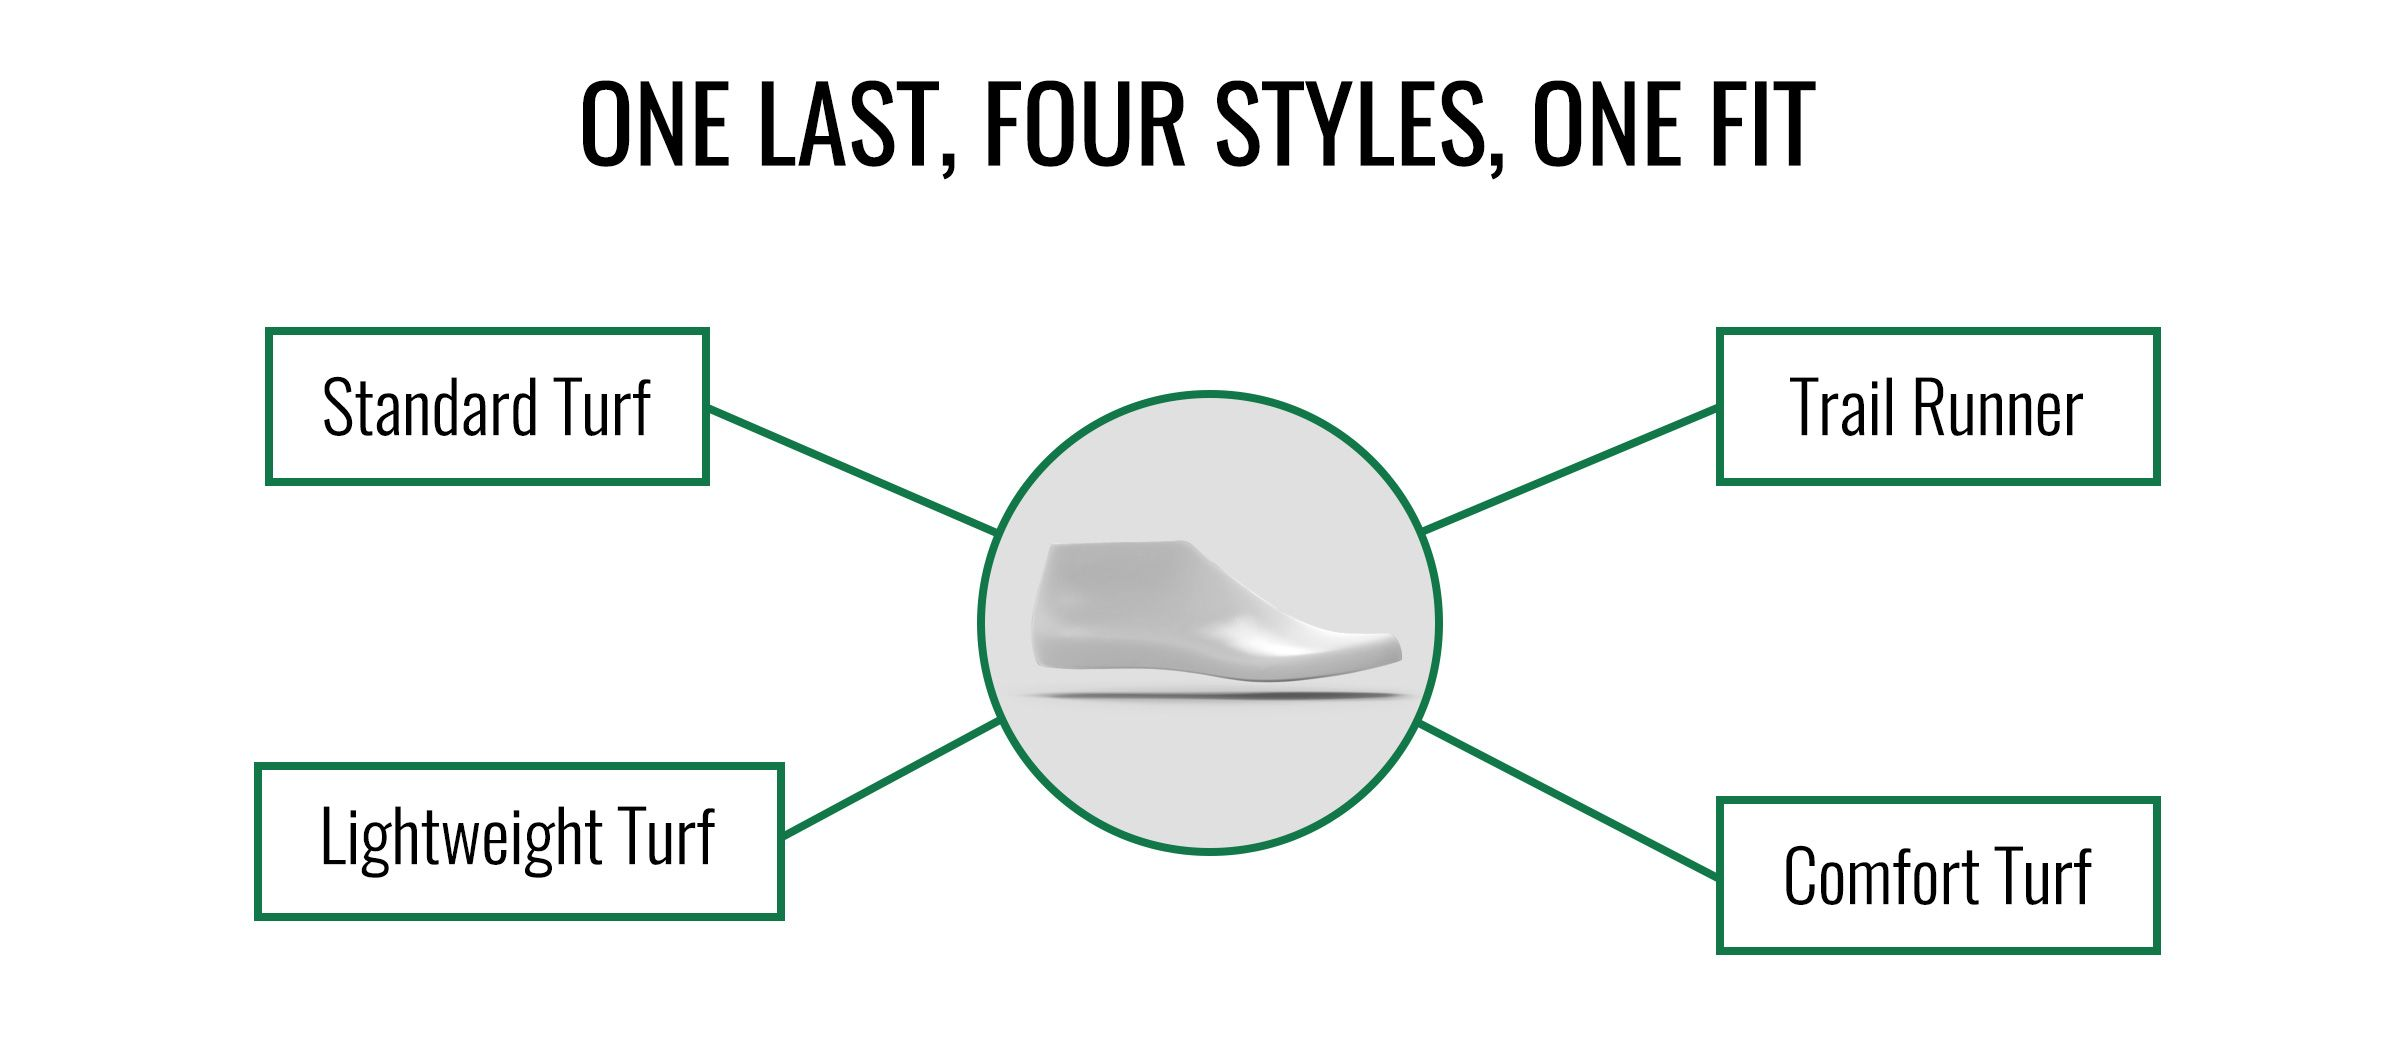 One Last, Four Styles, One Fit